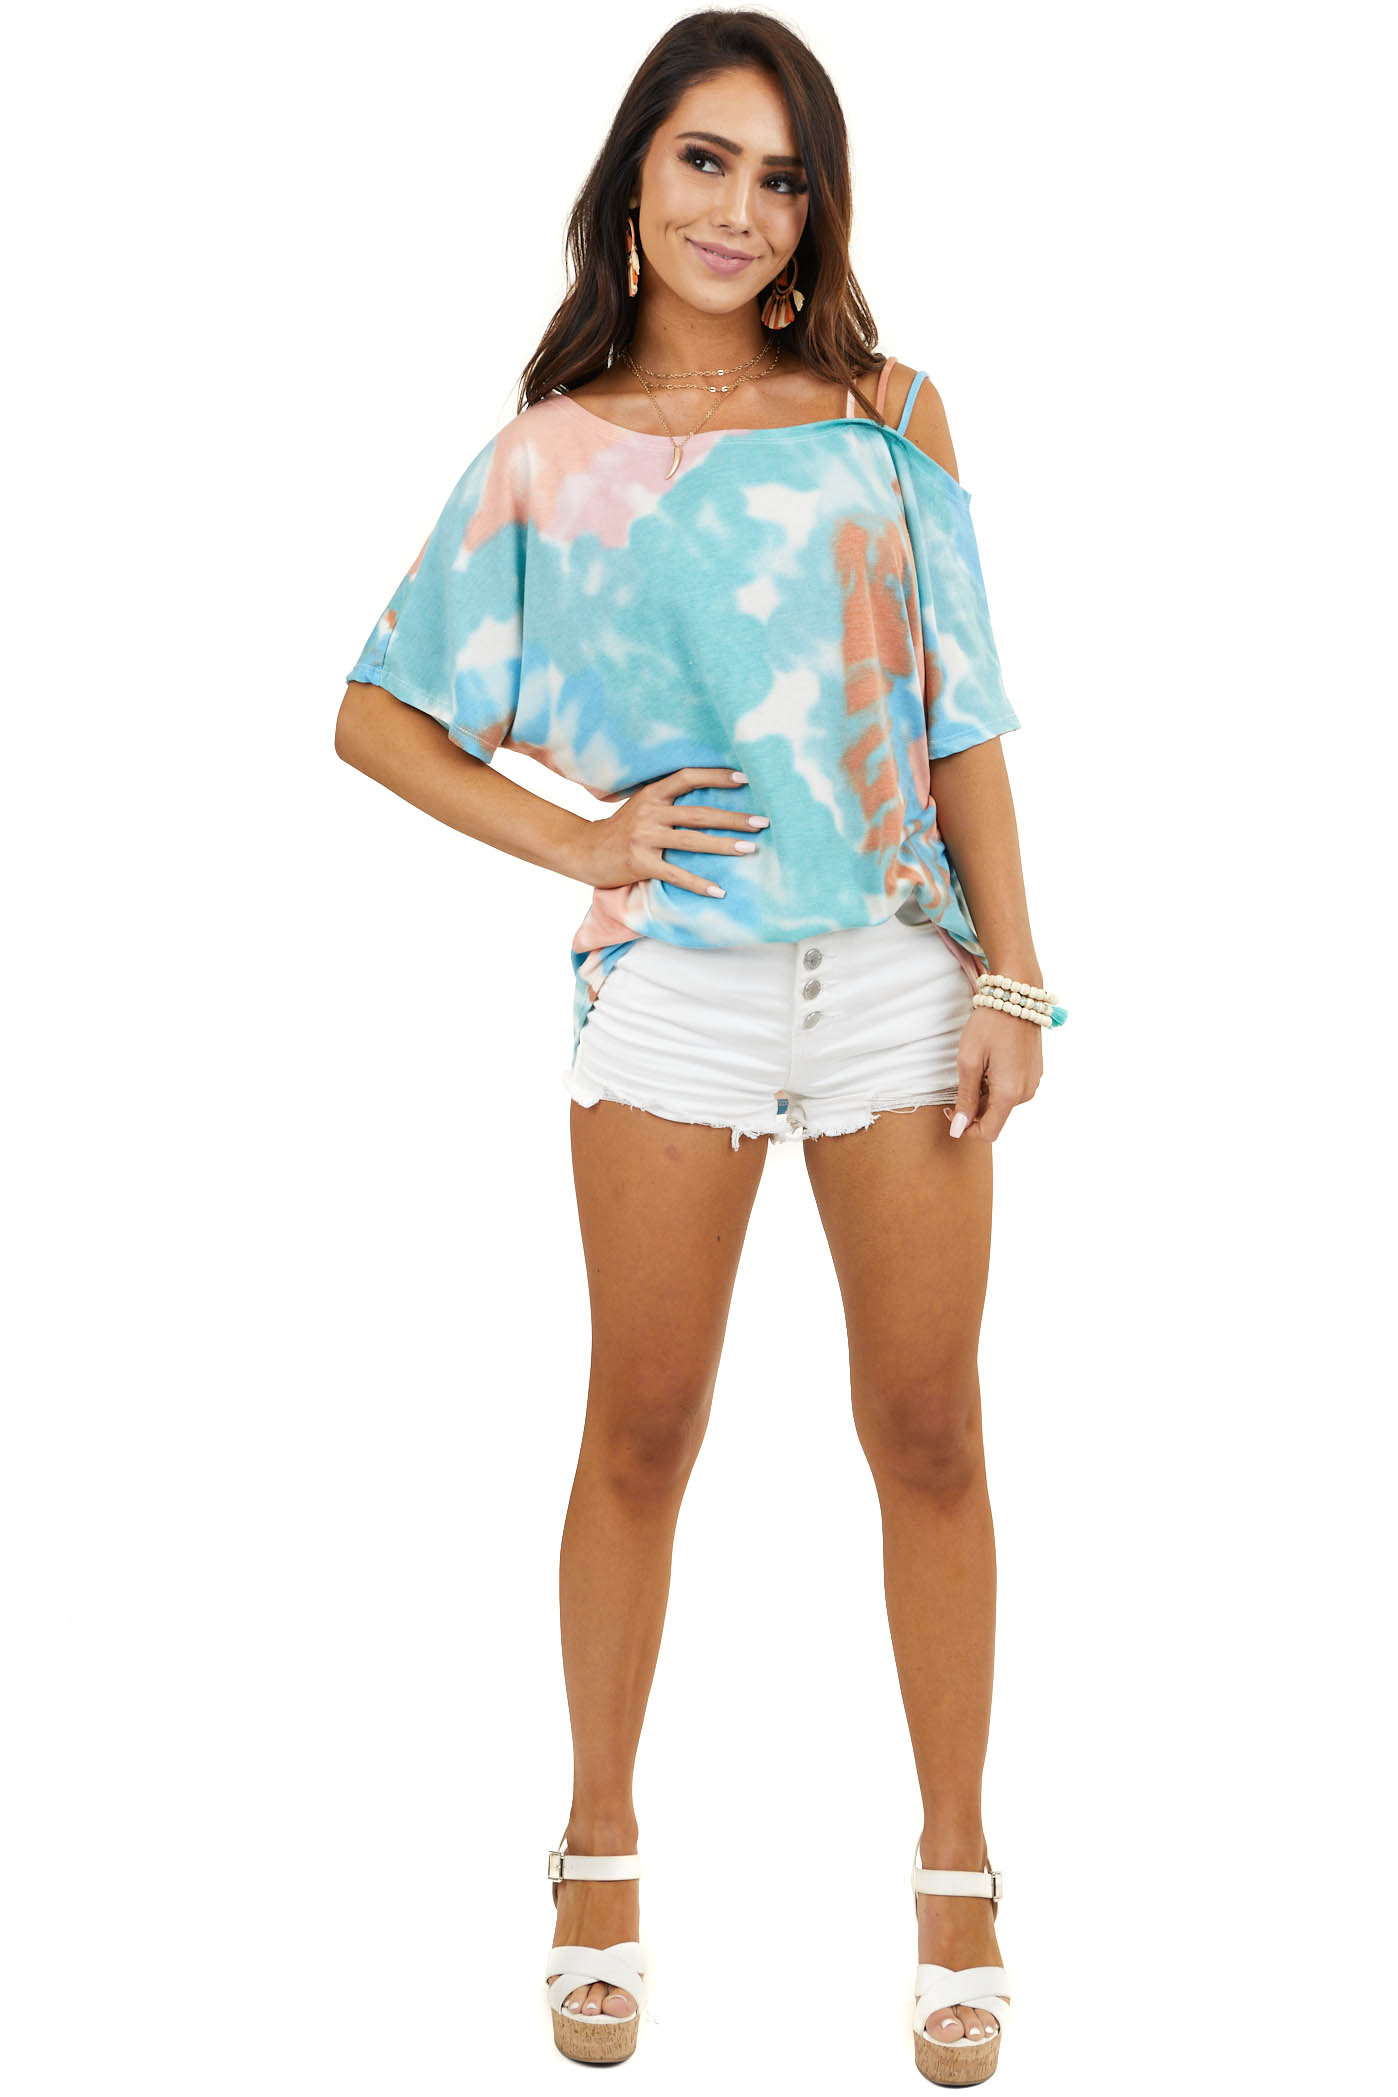 Teal Tie Dye Knit Top with One Strappy Cold Shoulder